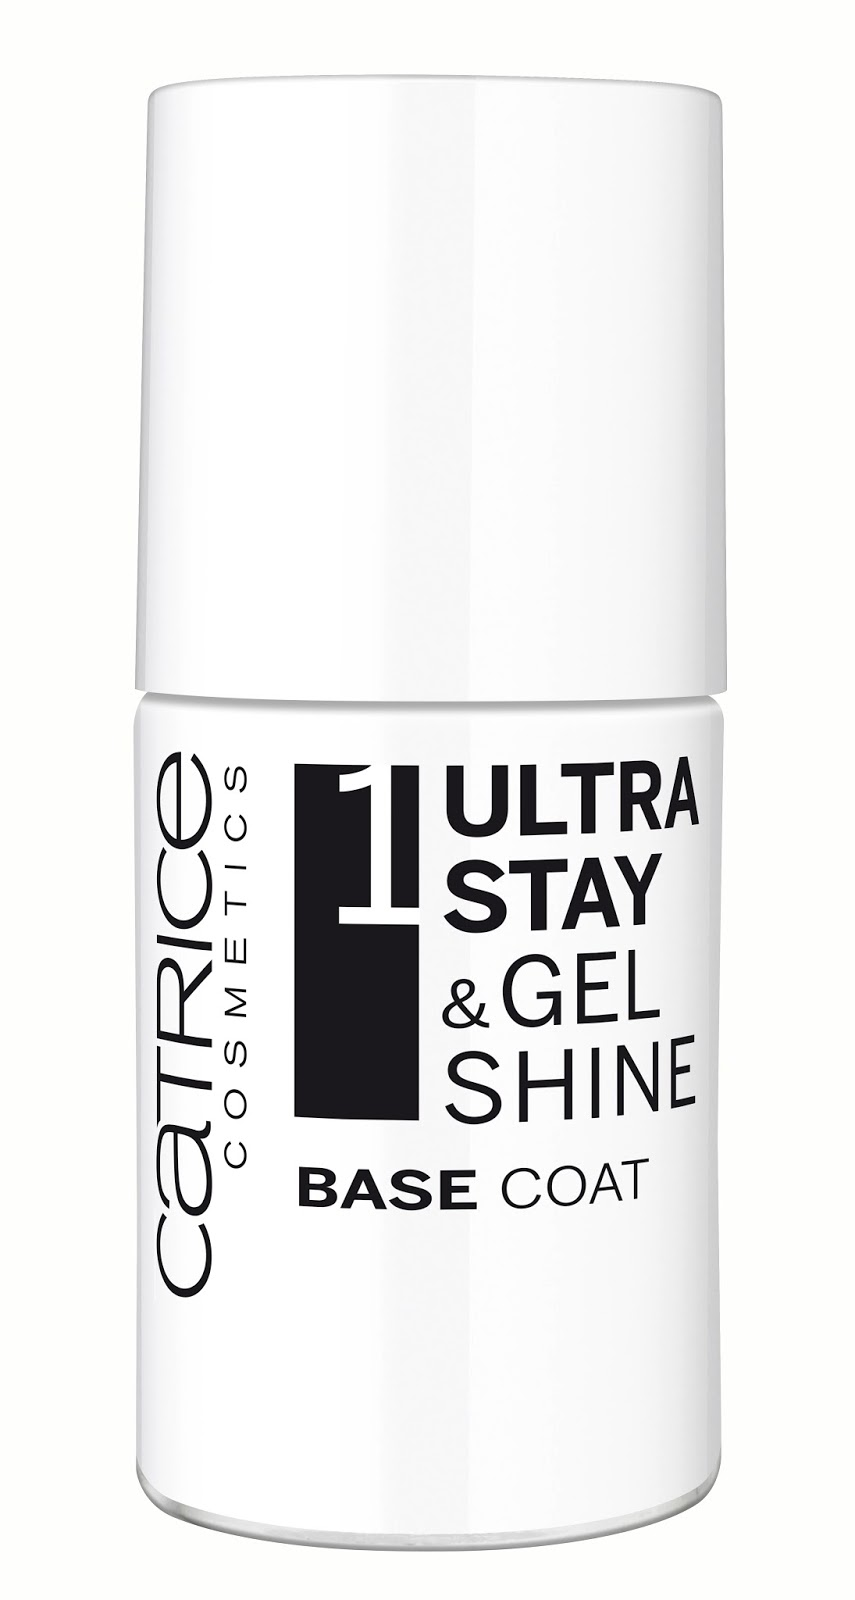 Catrice - Ultra Stay & Gel Shine Base Coat